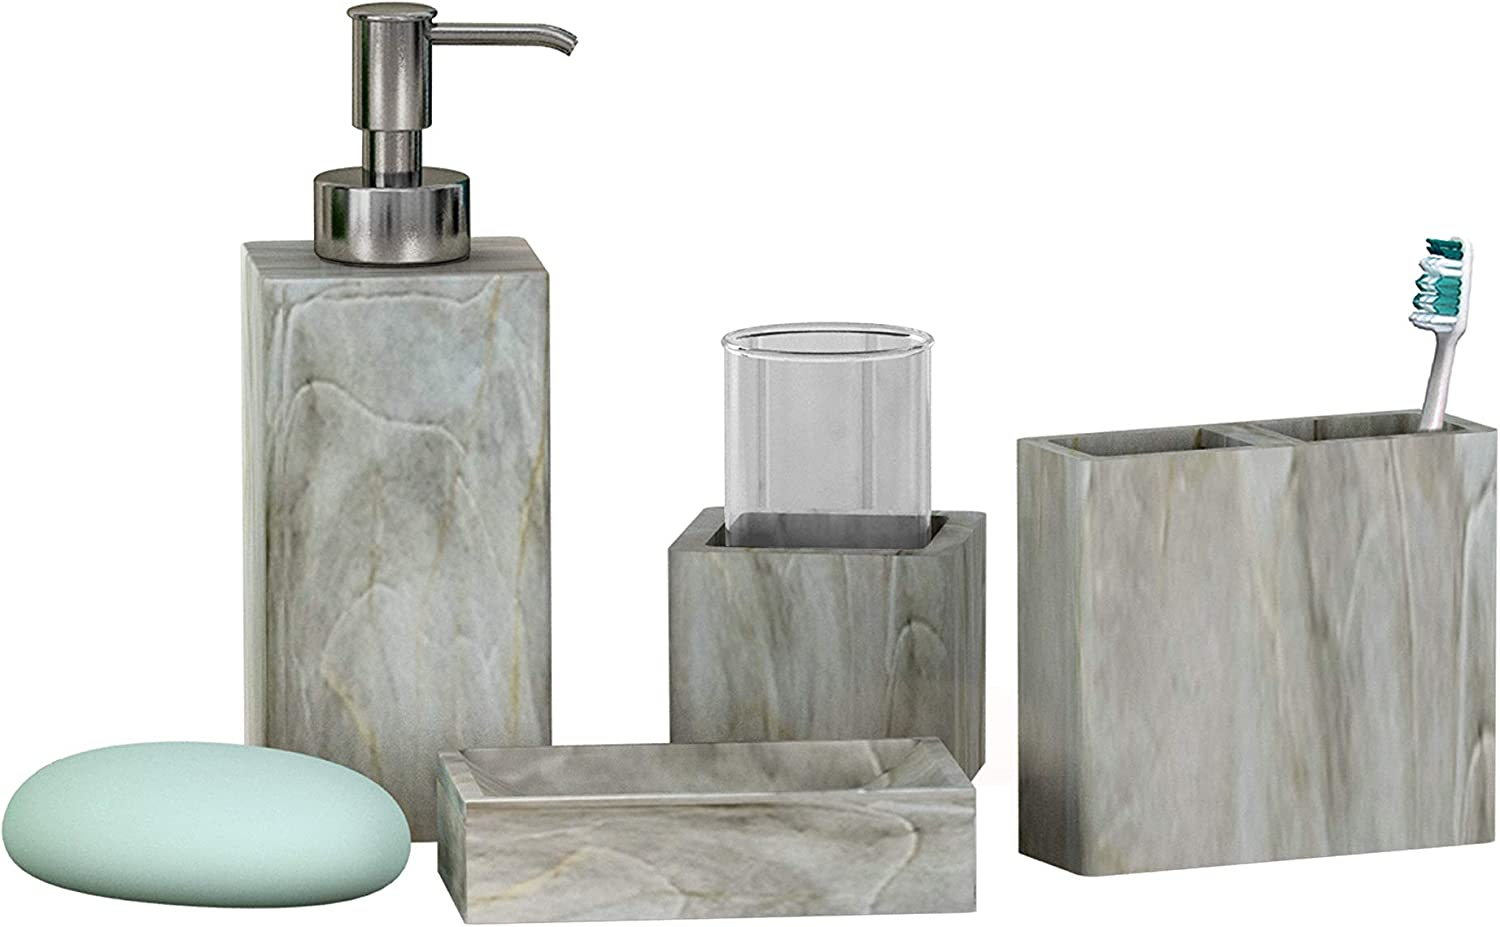 NuSteel Resin Stone Hedge Bath Accessory Set for Vanity Countertops, 4 Piece Luxury Ensemble Includes Dish, Toothbrush Holder, Tumbler, soap and Lotion Pump, Marble Finish